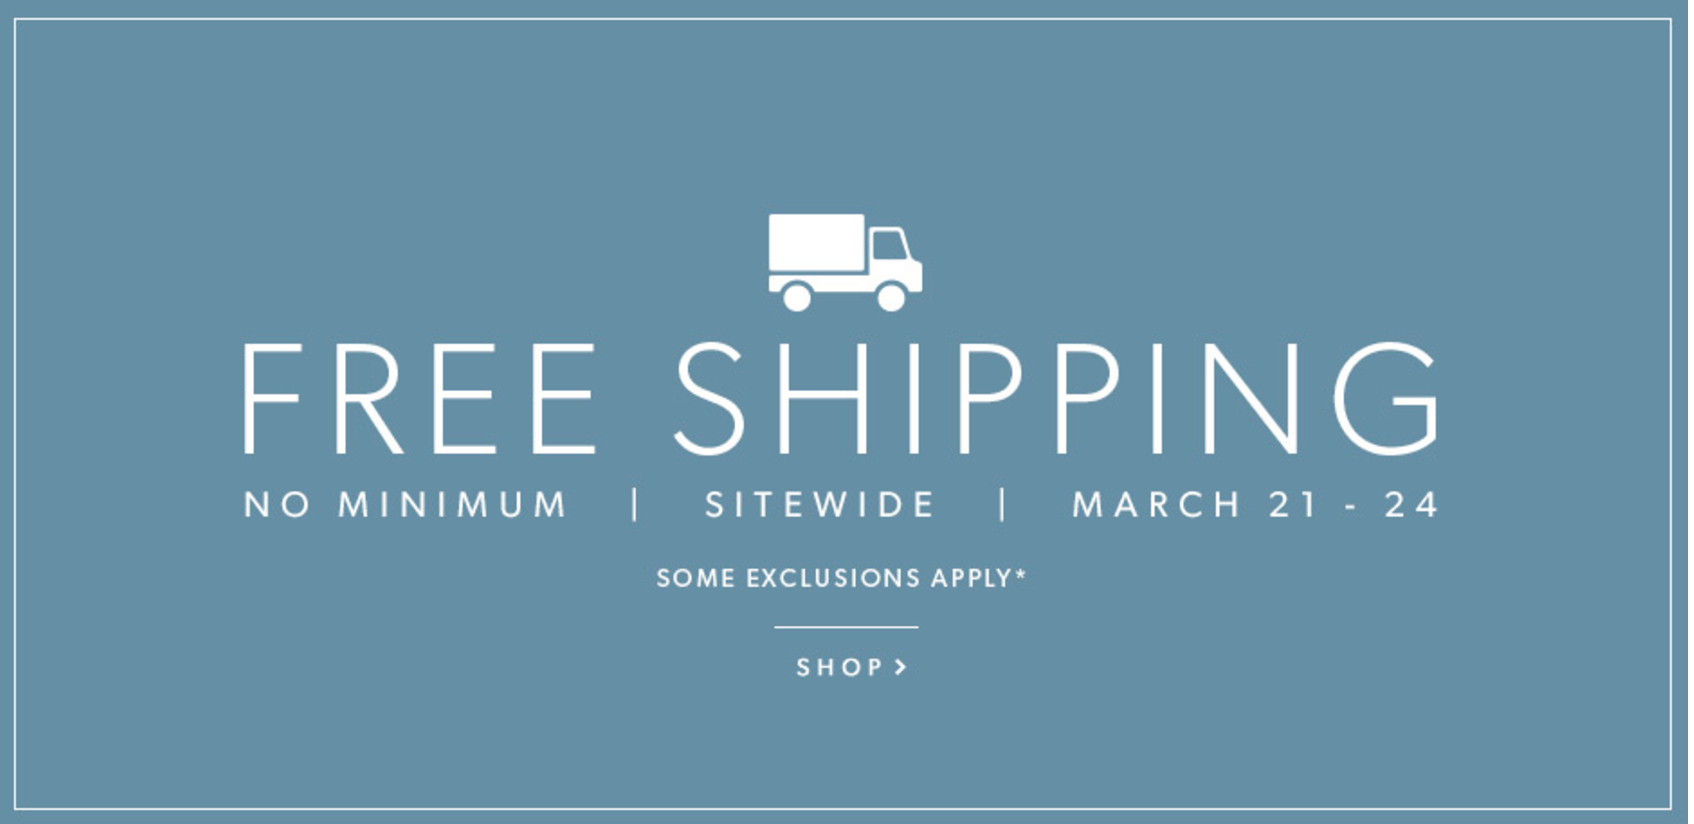 indigo canada deals free shipping sitewide up to 50